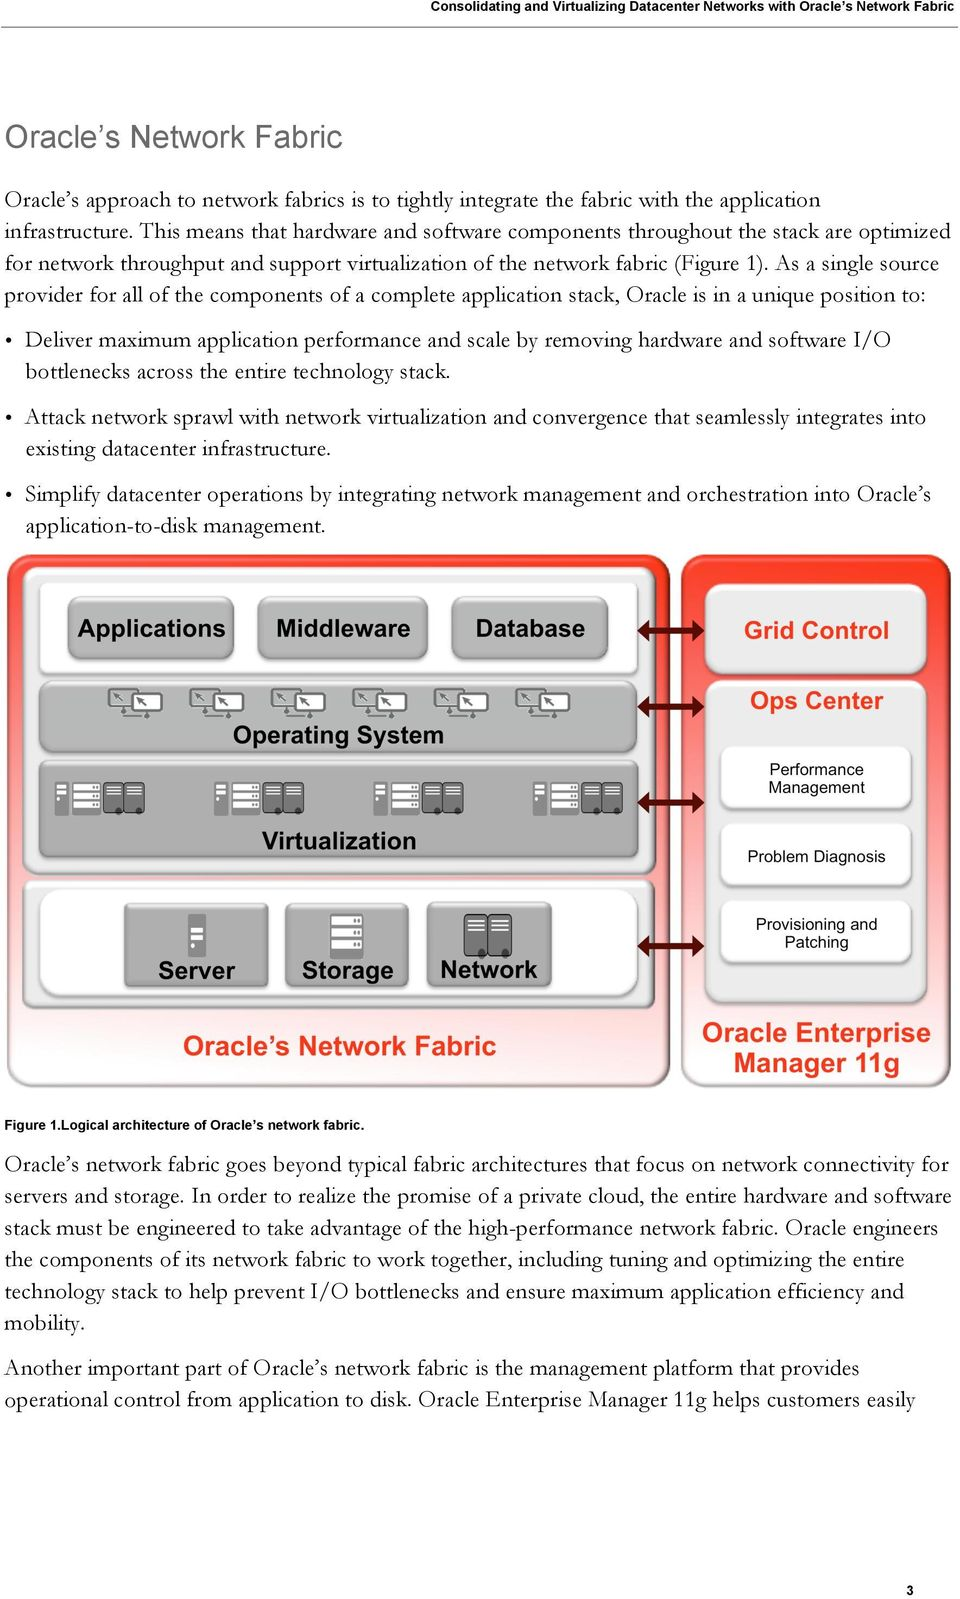 As a single source provider for all of the components of a complete application stack, Oracle is in a unique position to: Deliver maximum application performance and scale by removing hardware and